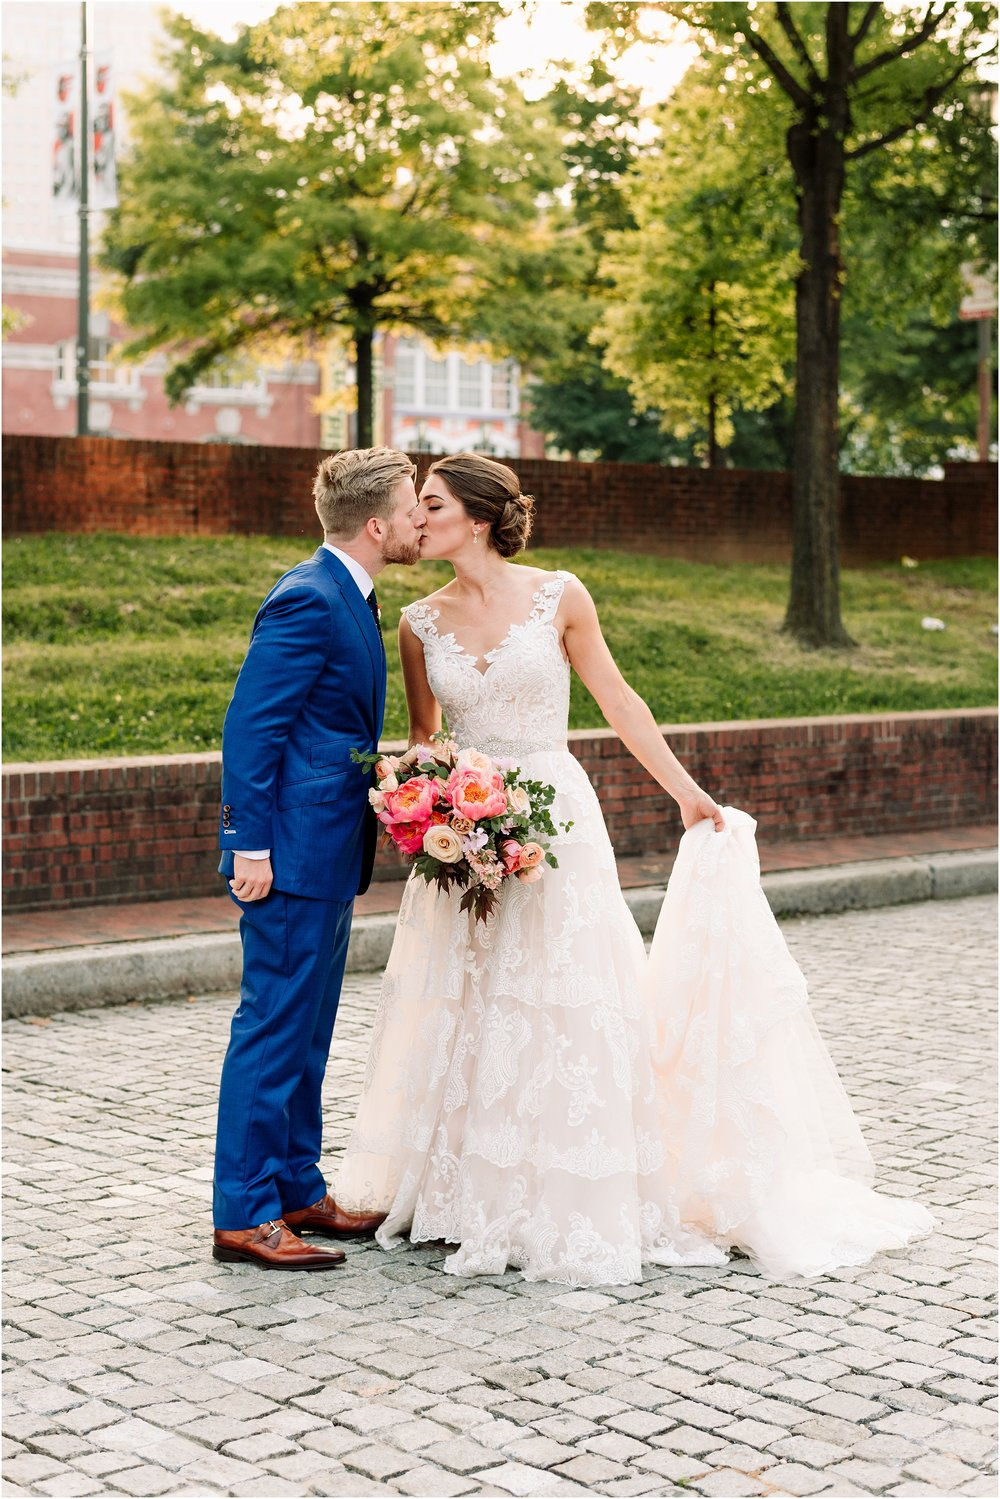 hannah leigh photography 1840s plaza wedding baltimore md_0100.jpg